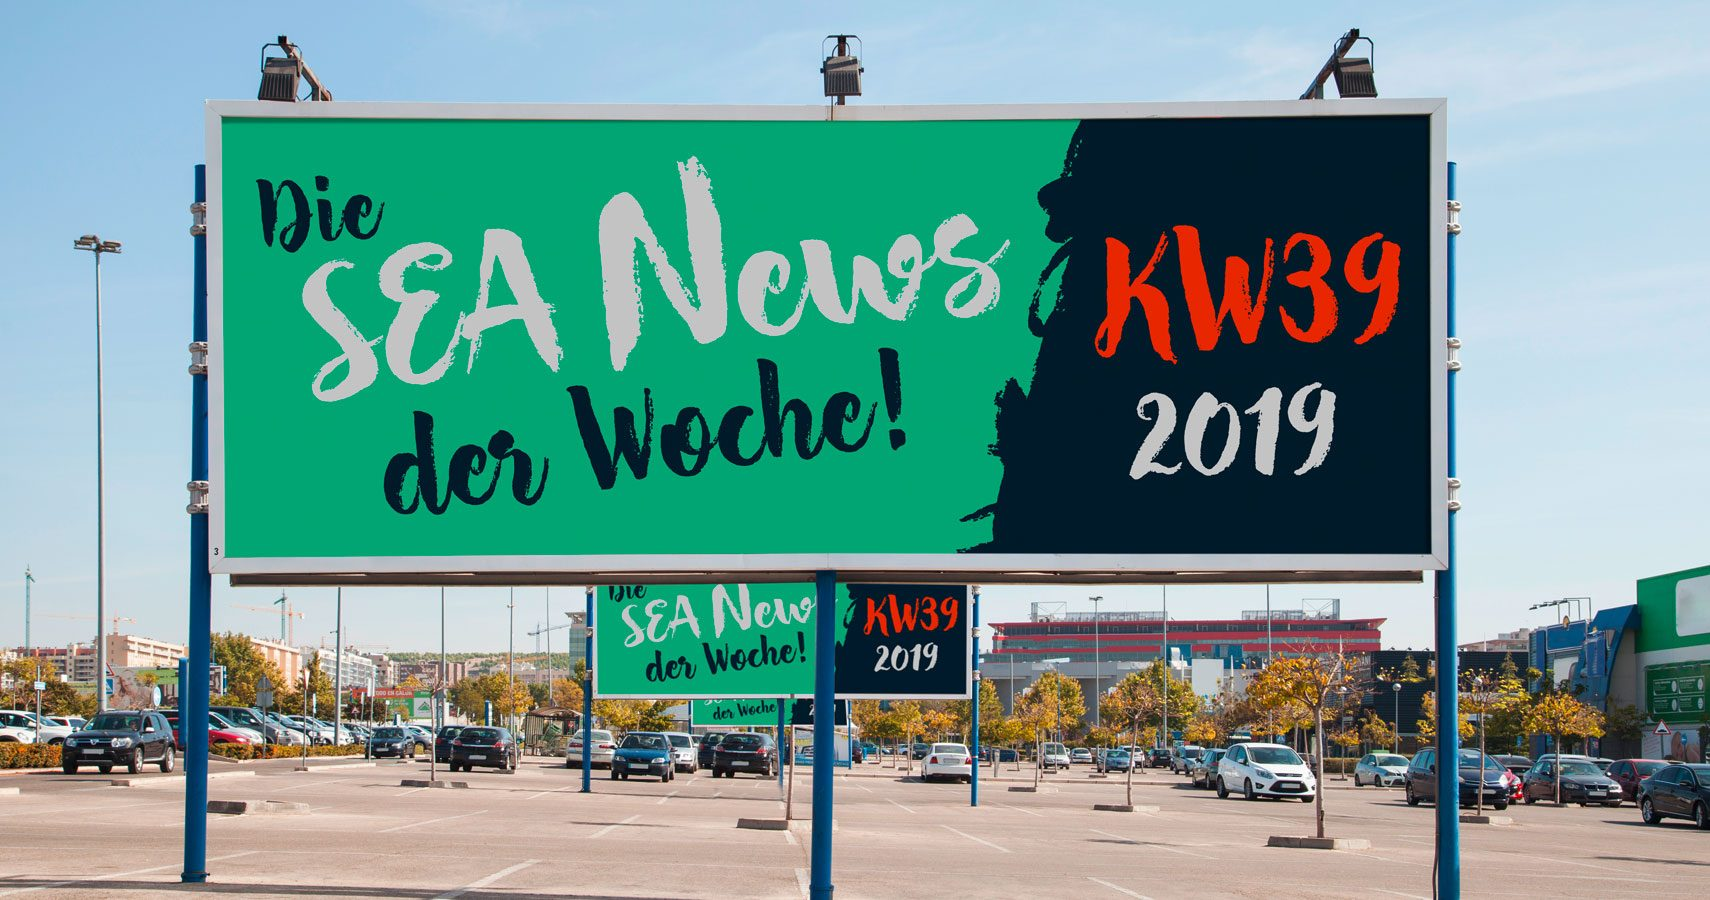 adseed – SEA News 39/2019